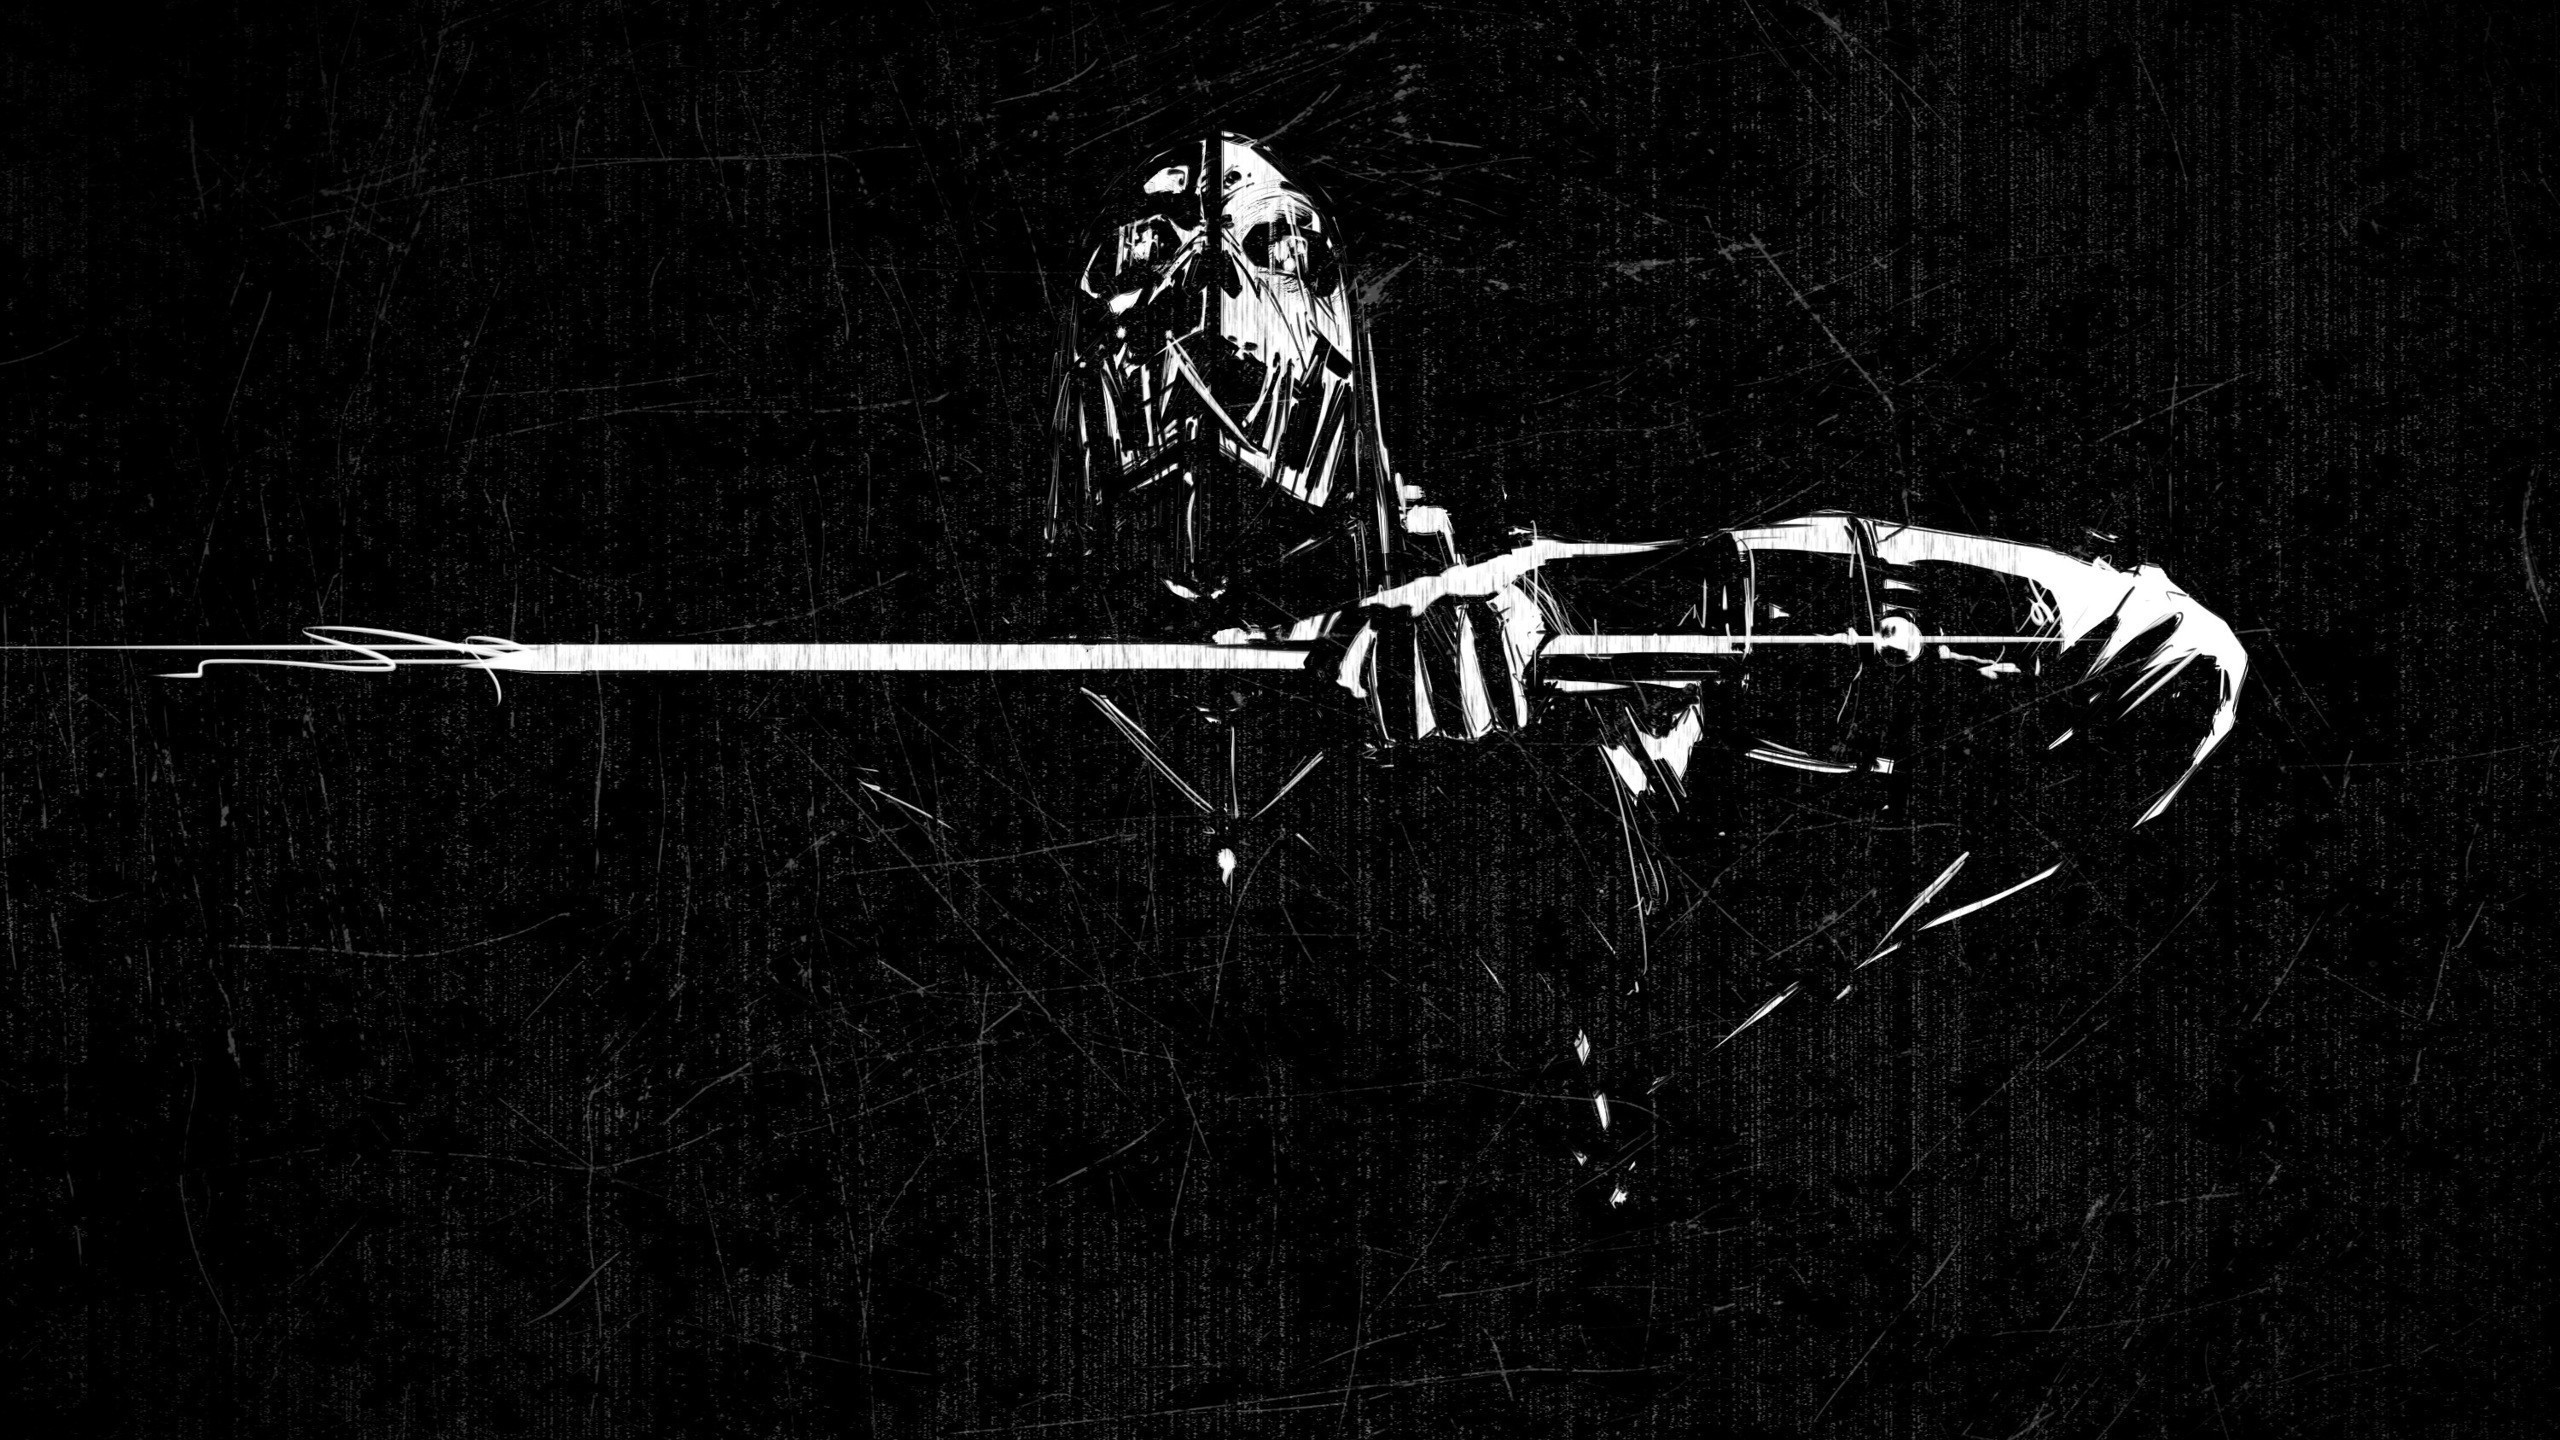 … HD Wallpaper Dishonored …